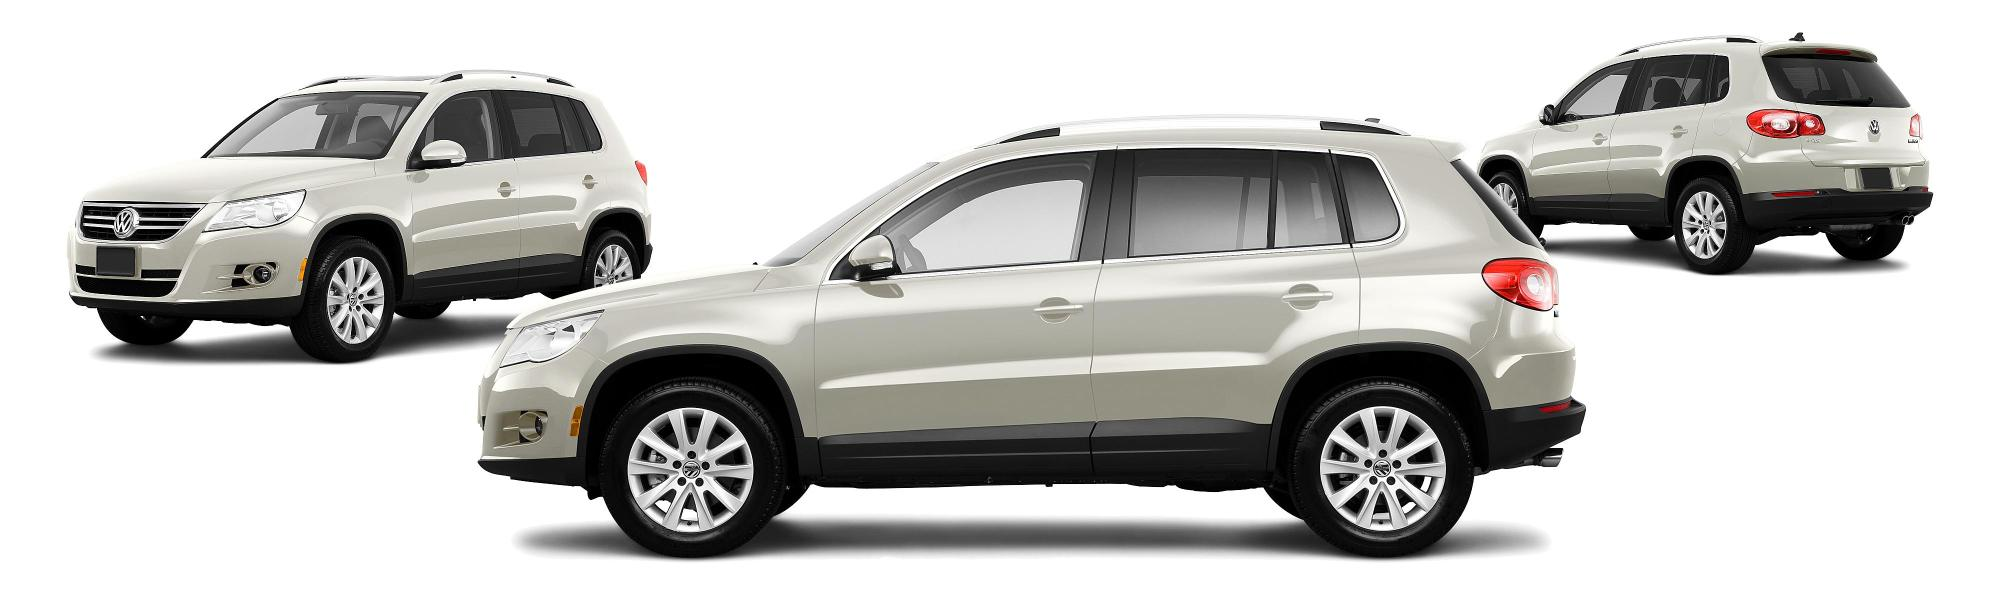 hight resolution of 2010 volkswagen tiguan awd wolfsburg edition 4motion suv 6a research groovecar